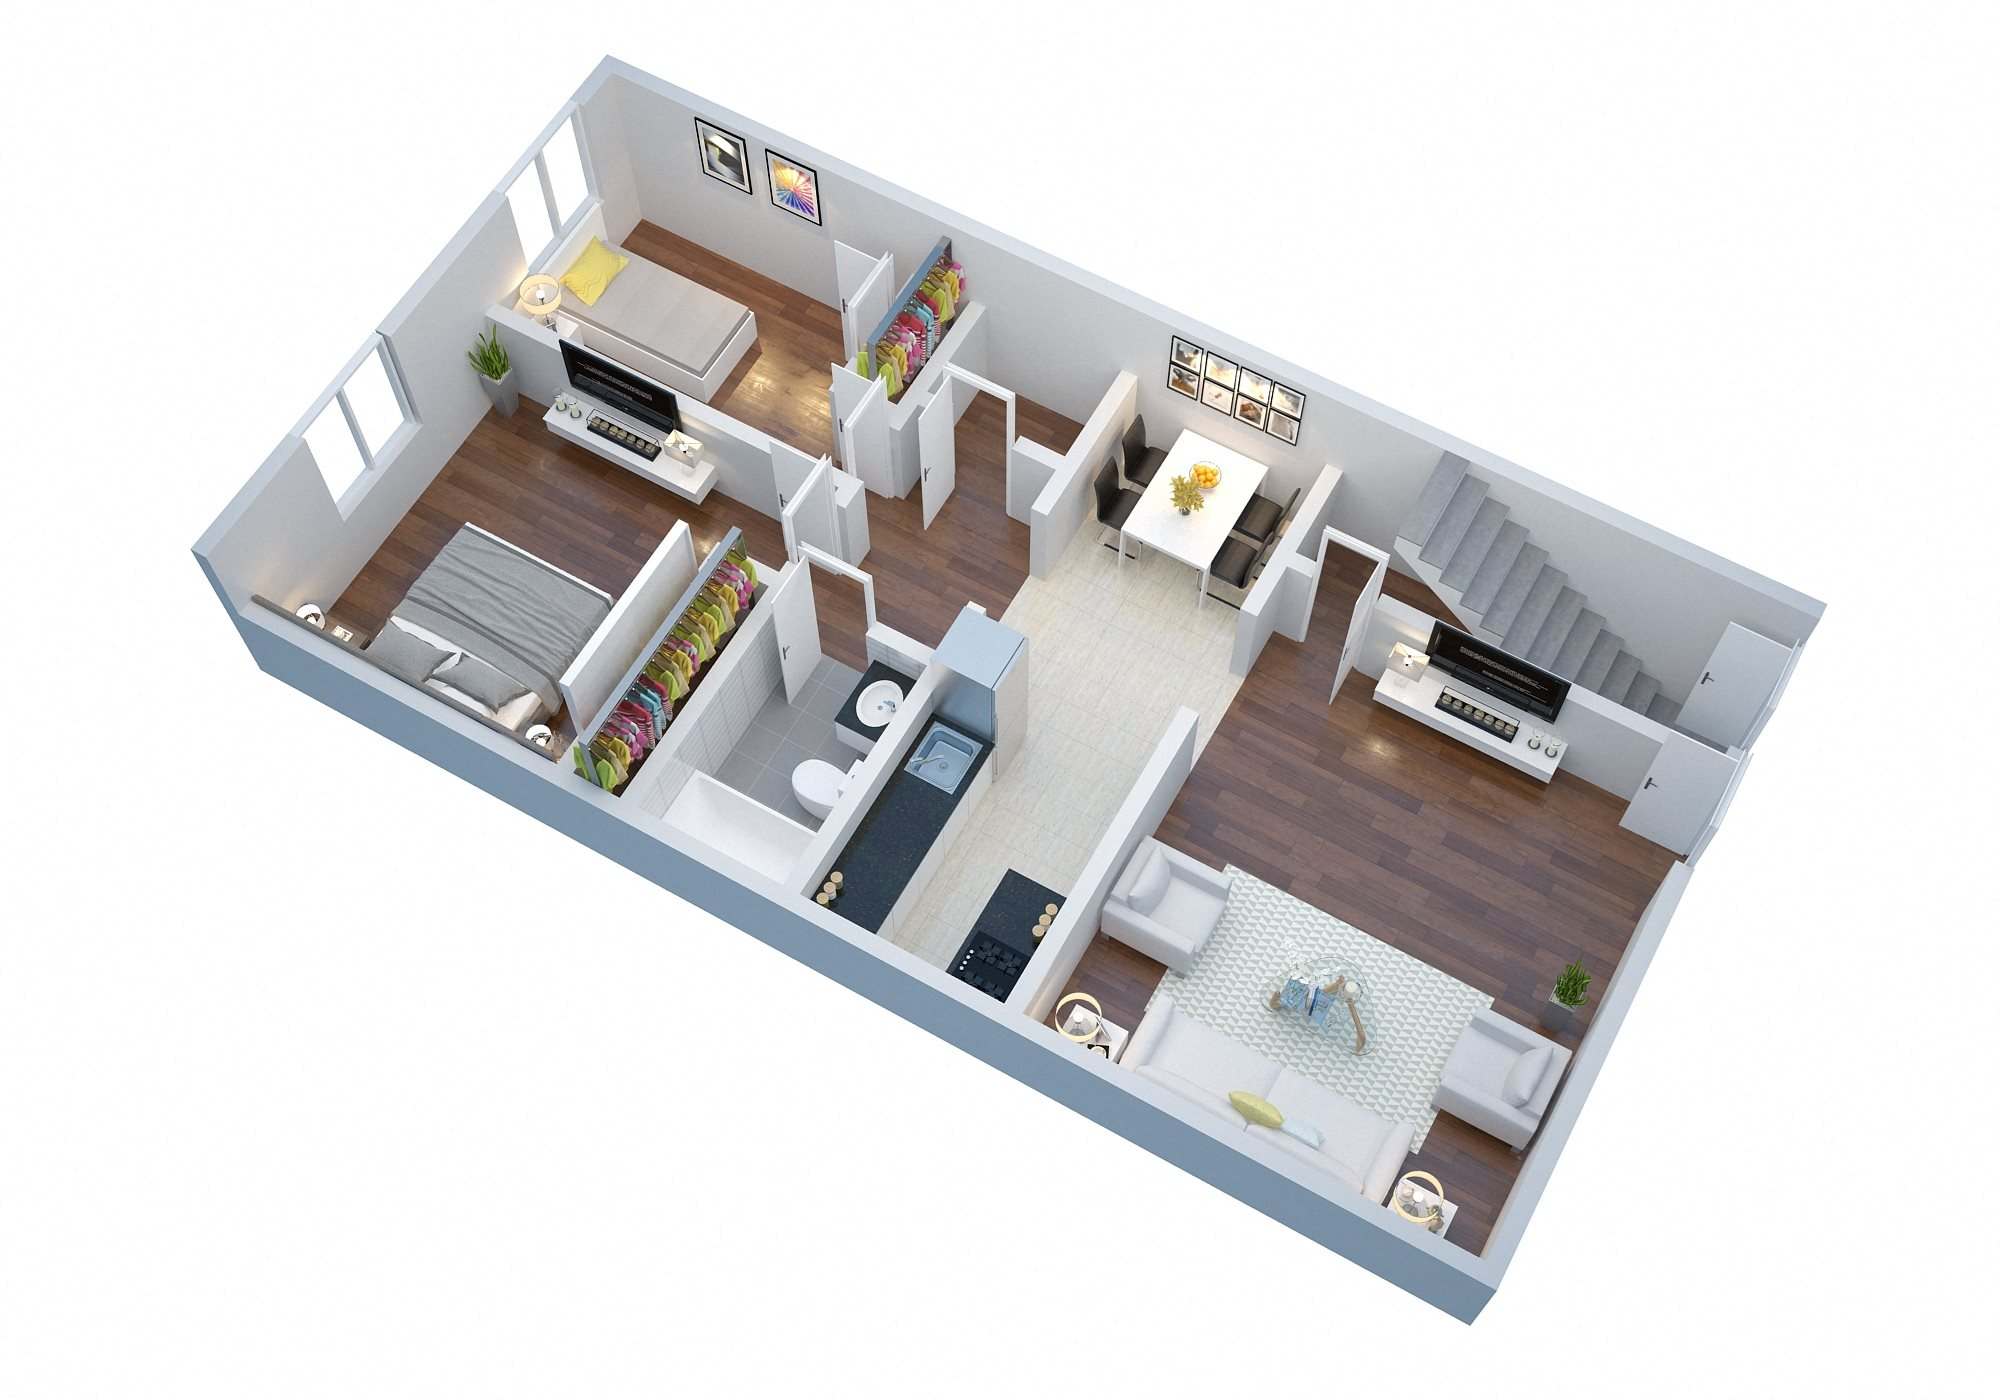 2 Bedroom with Garage Floor Plan 5